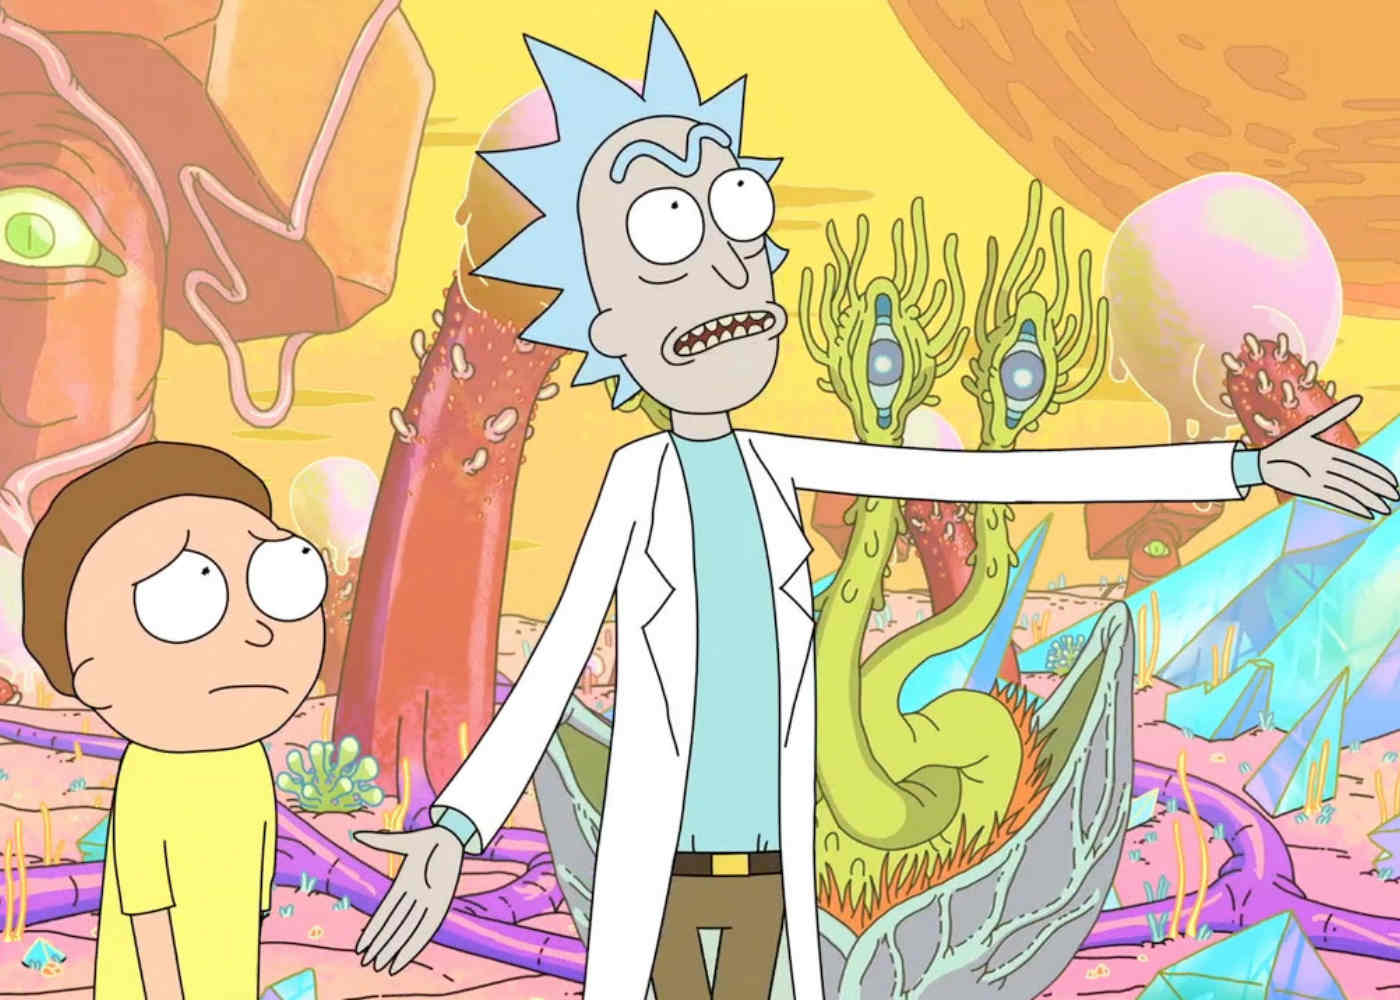 Wubba Lubba Dub Dub! New Rick and Morty Season 3 Trailer